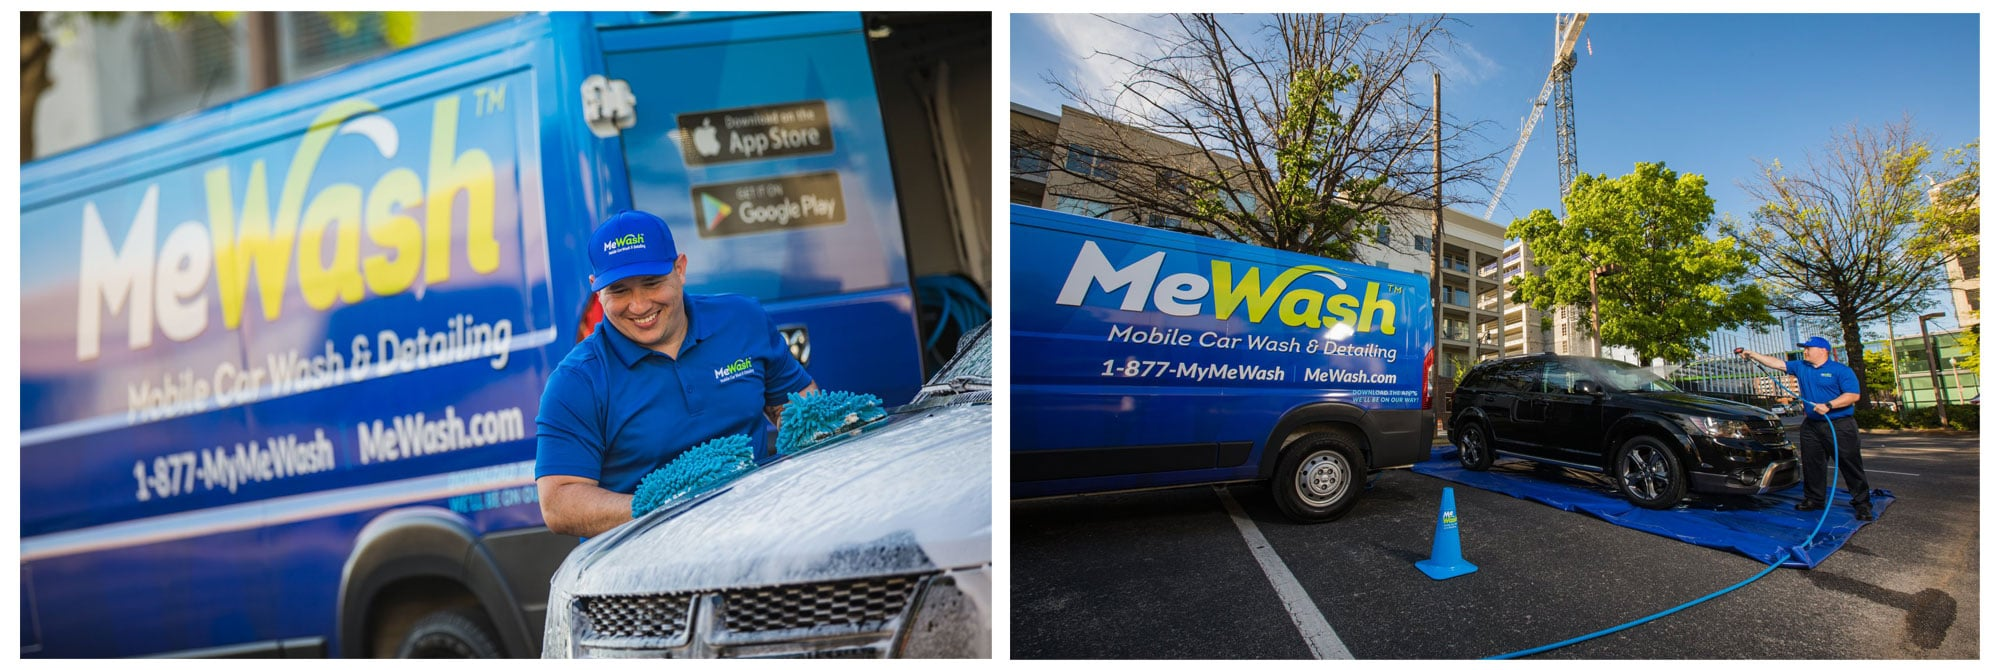 MeWash branding photos 8